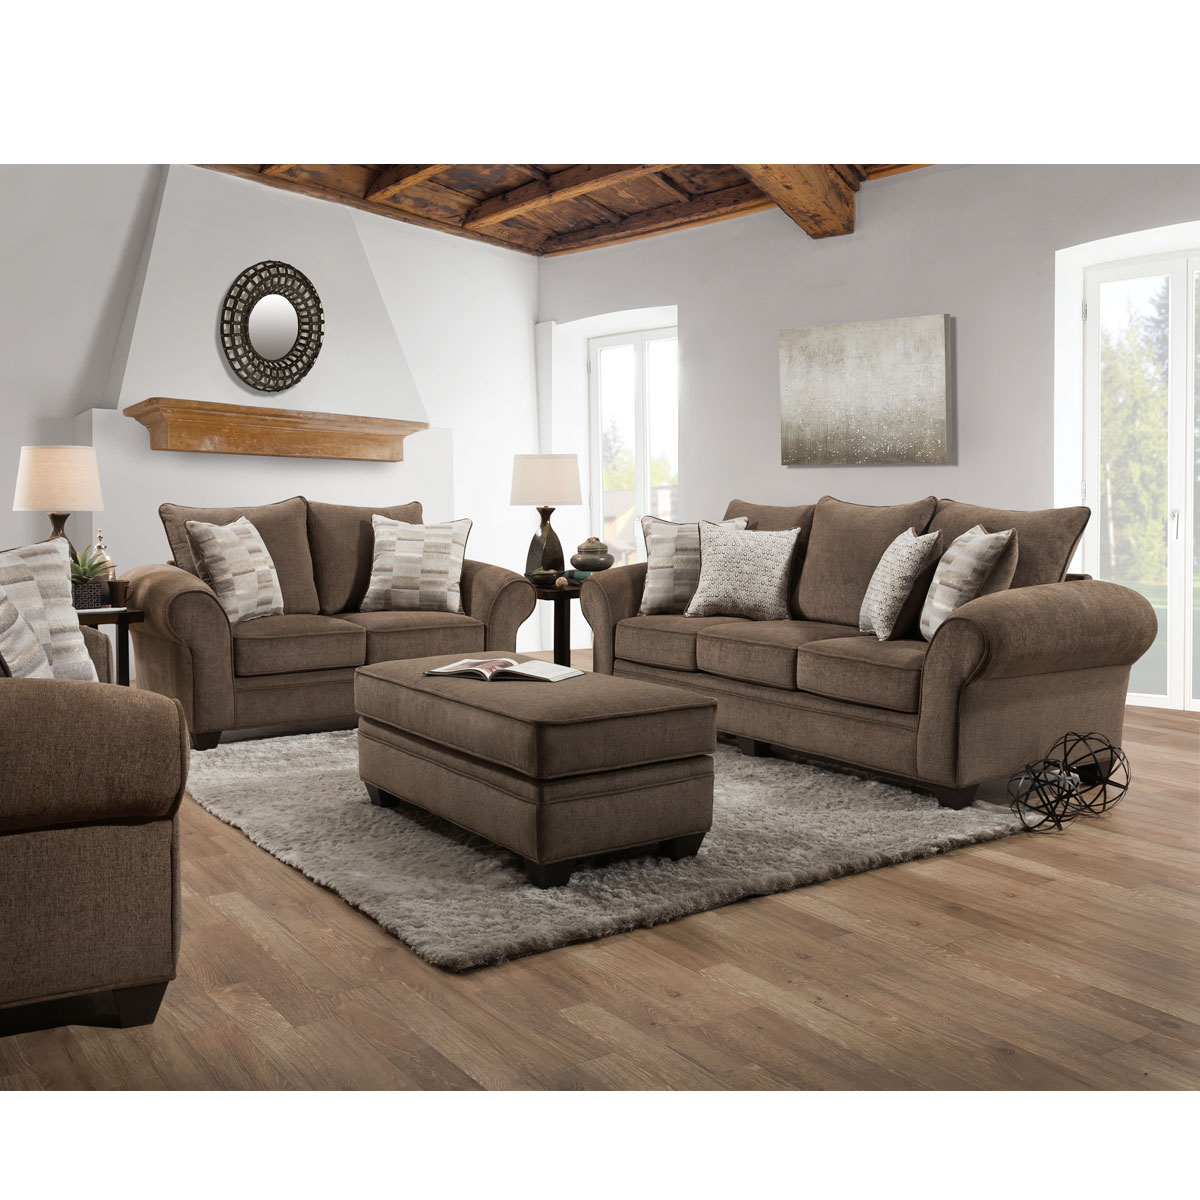 Living Room Sets Cook Brothers, Cook Brothers Living Room Sets